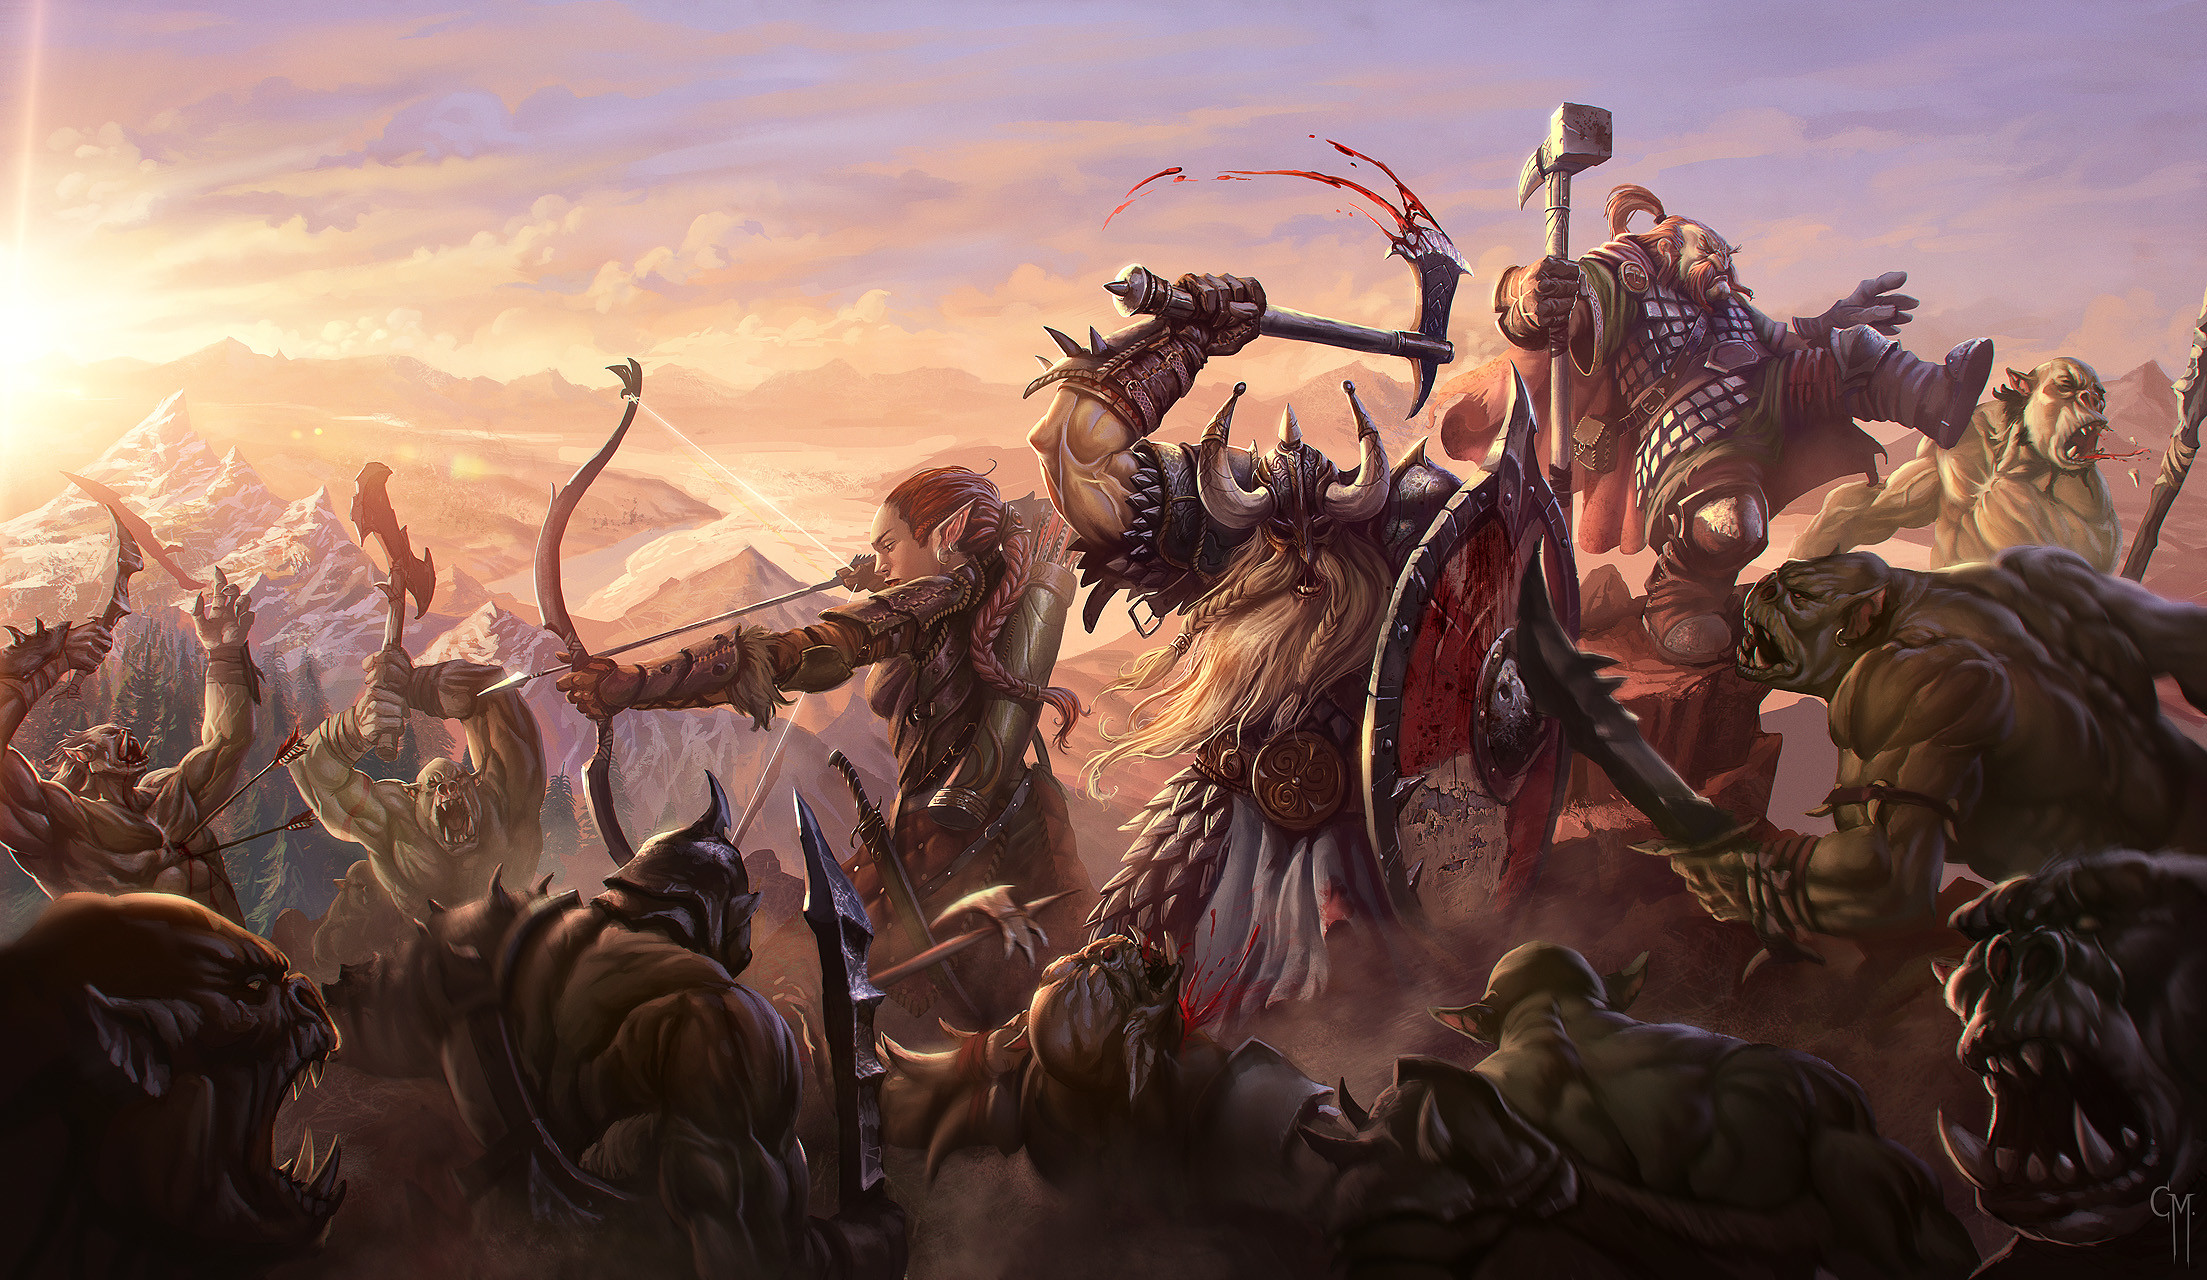 Final Battle by Hamsterfly   Inspiration   Pinterest   Art reference and  Artwork